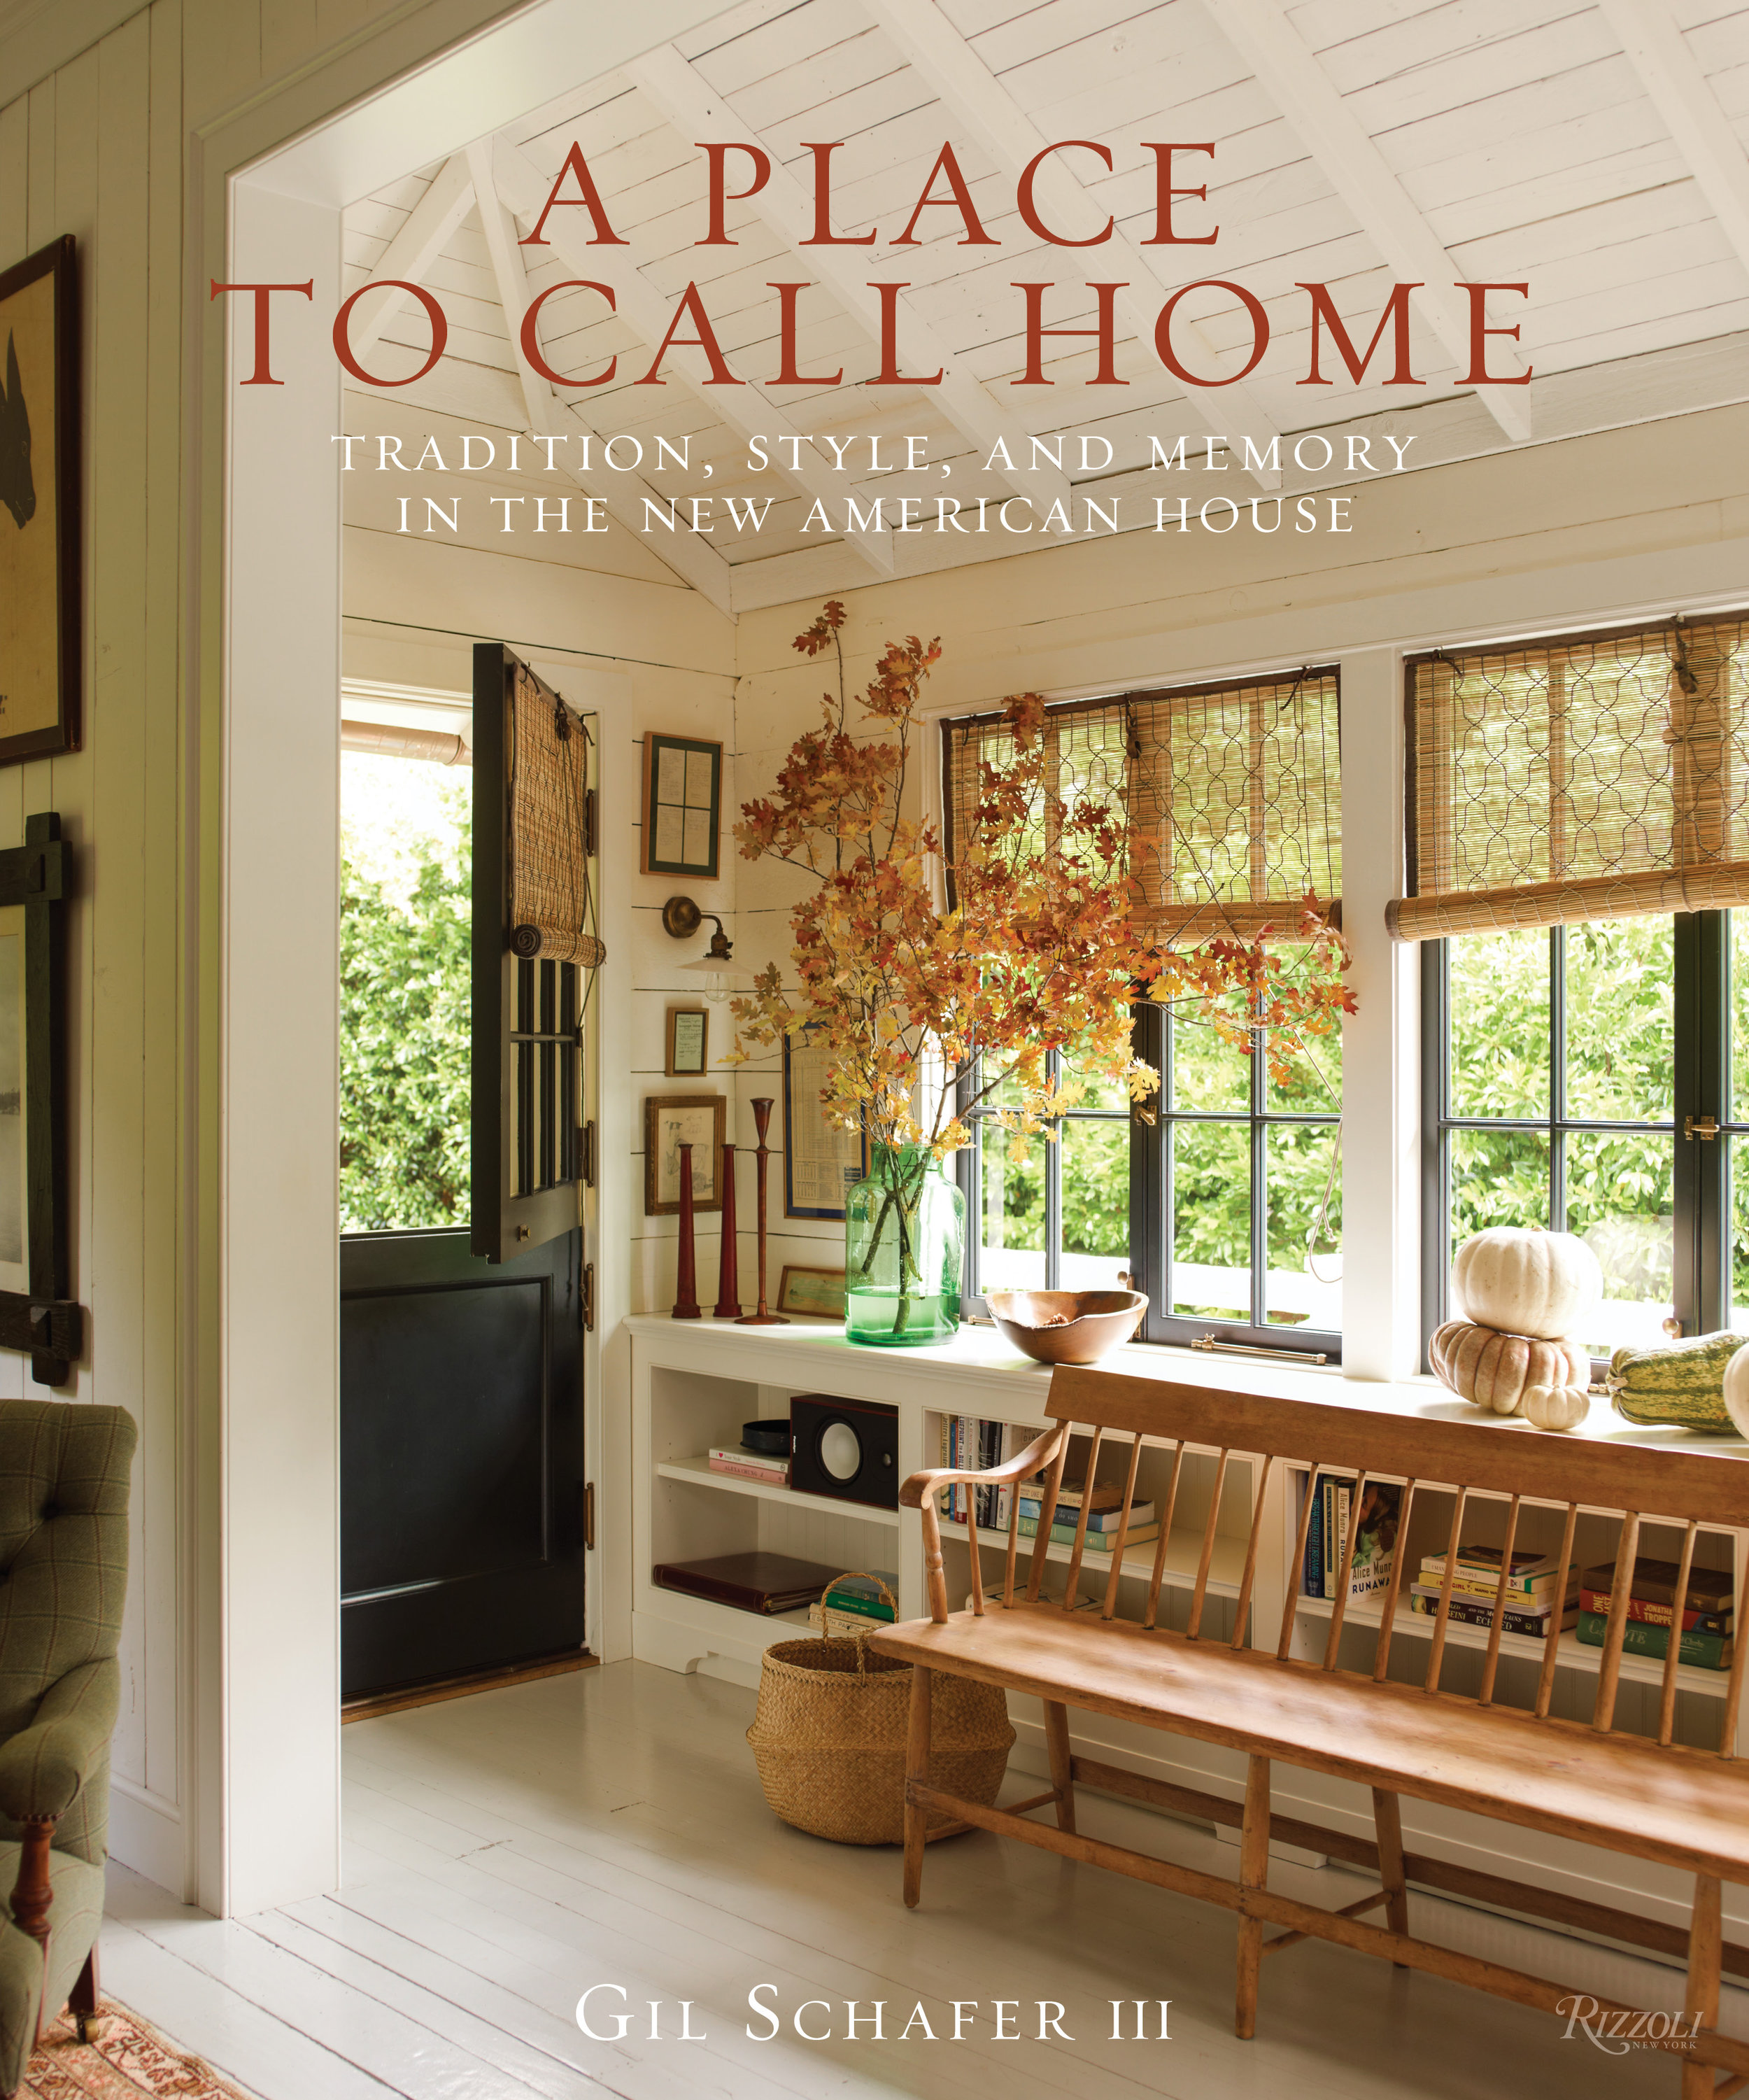 © A Place to Call Home by Gil Schafer, Rizzoli, 2017. Photos by Eric Piasecki